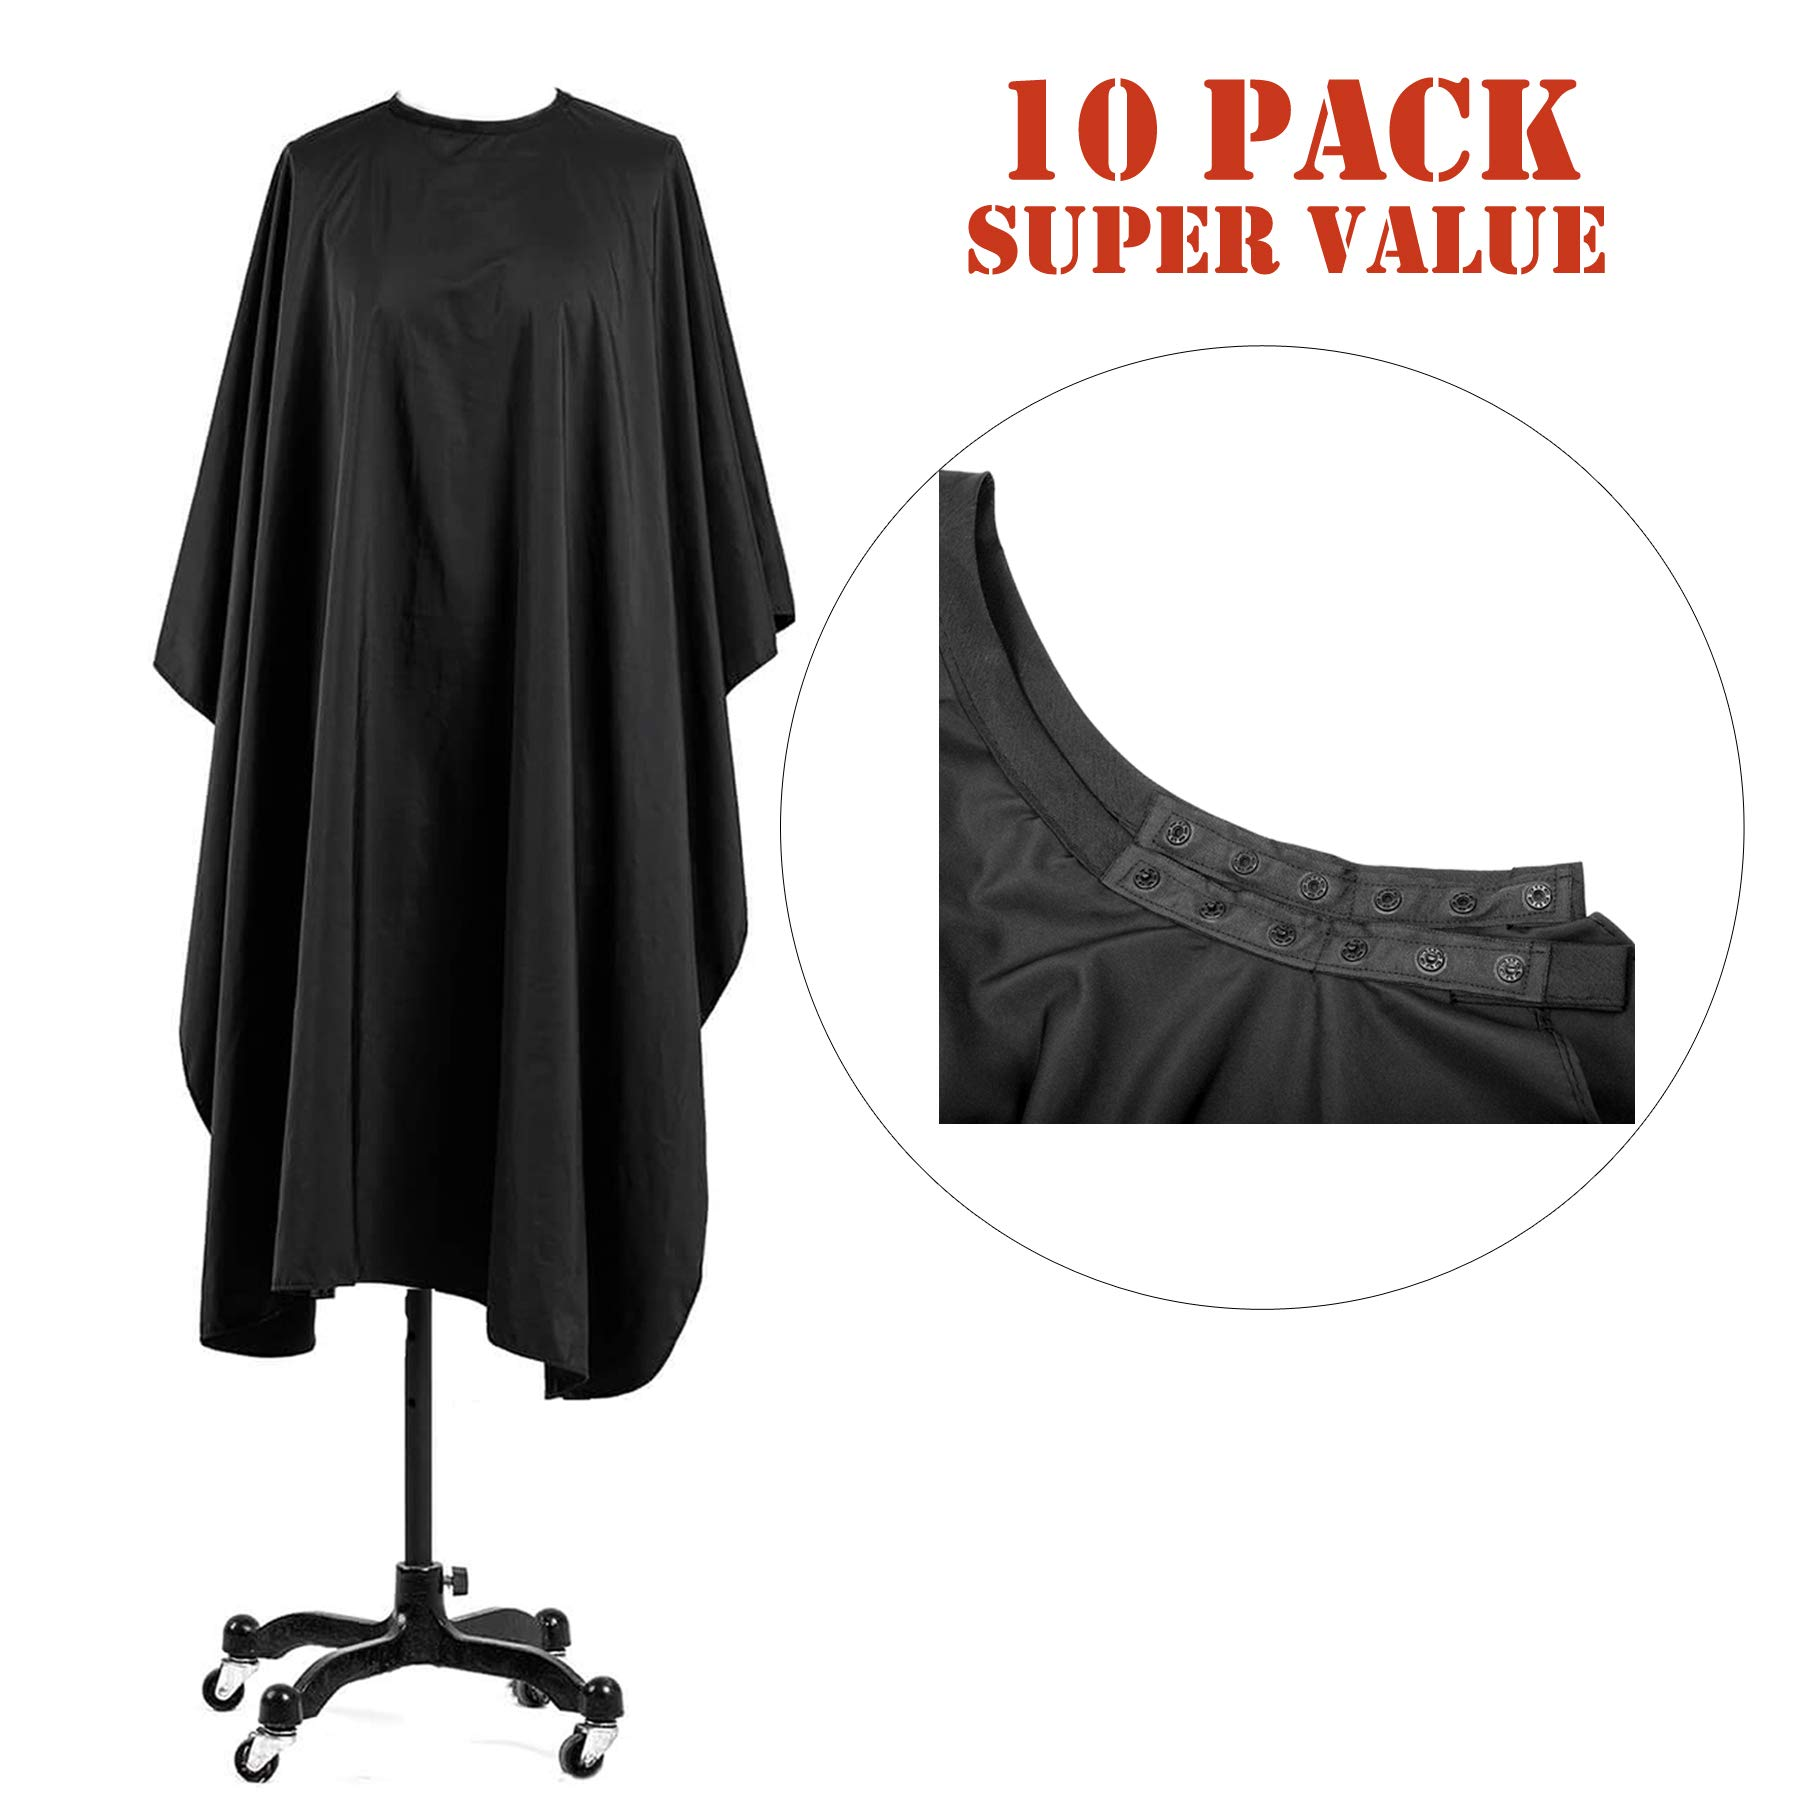 Coobi Professional Hair Salon Nylon Cape with Snap Closure 62'' x 50'' Black-10 Pack by Coobi